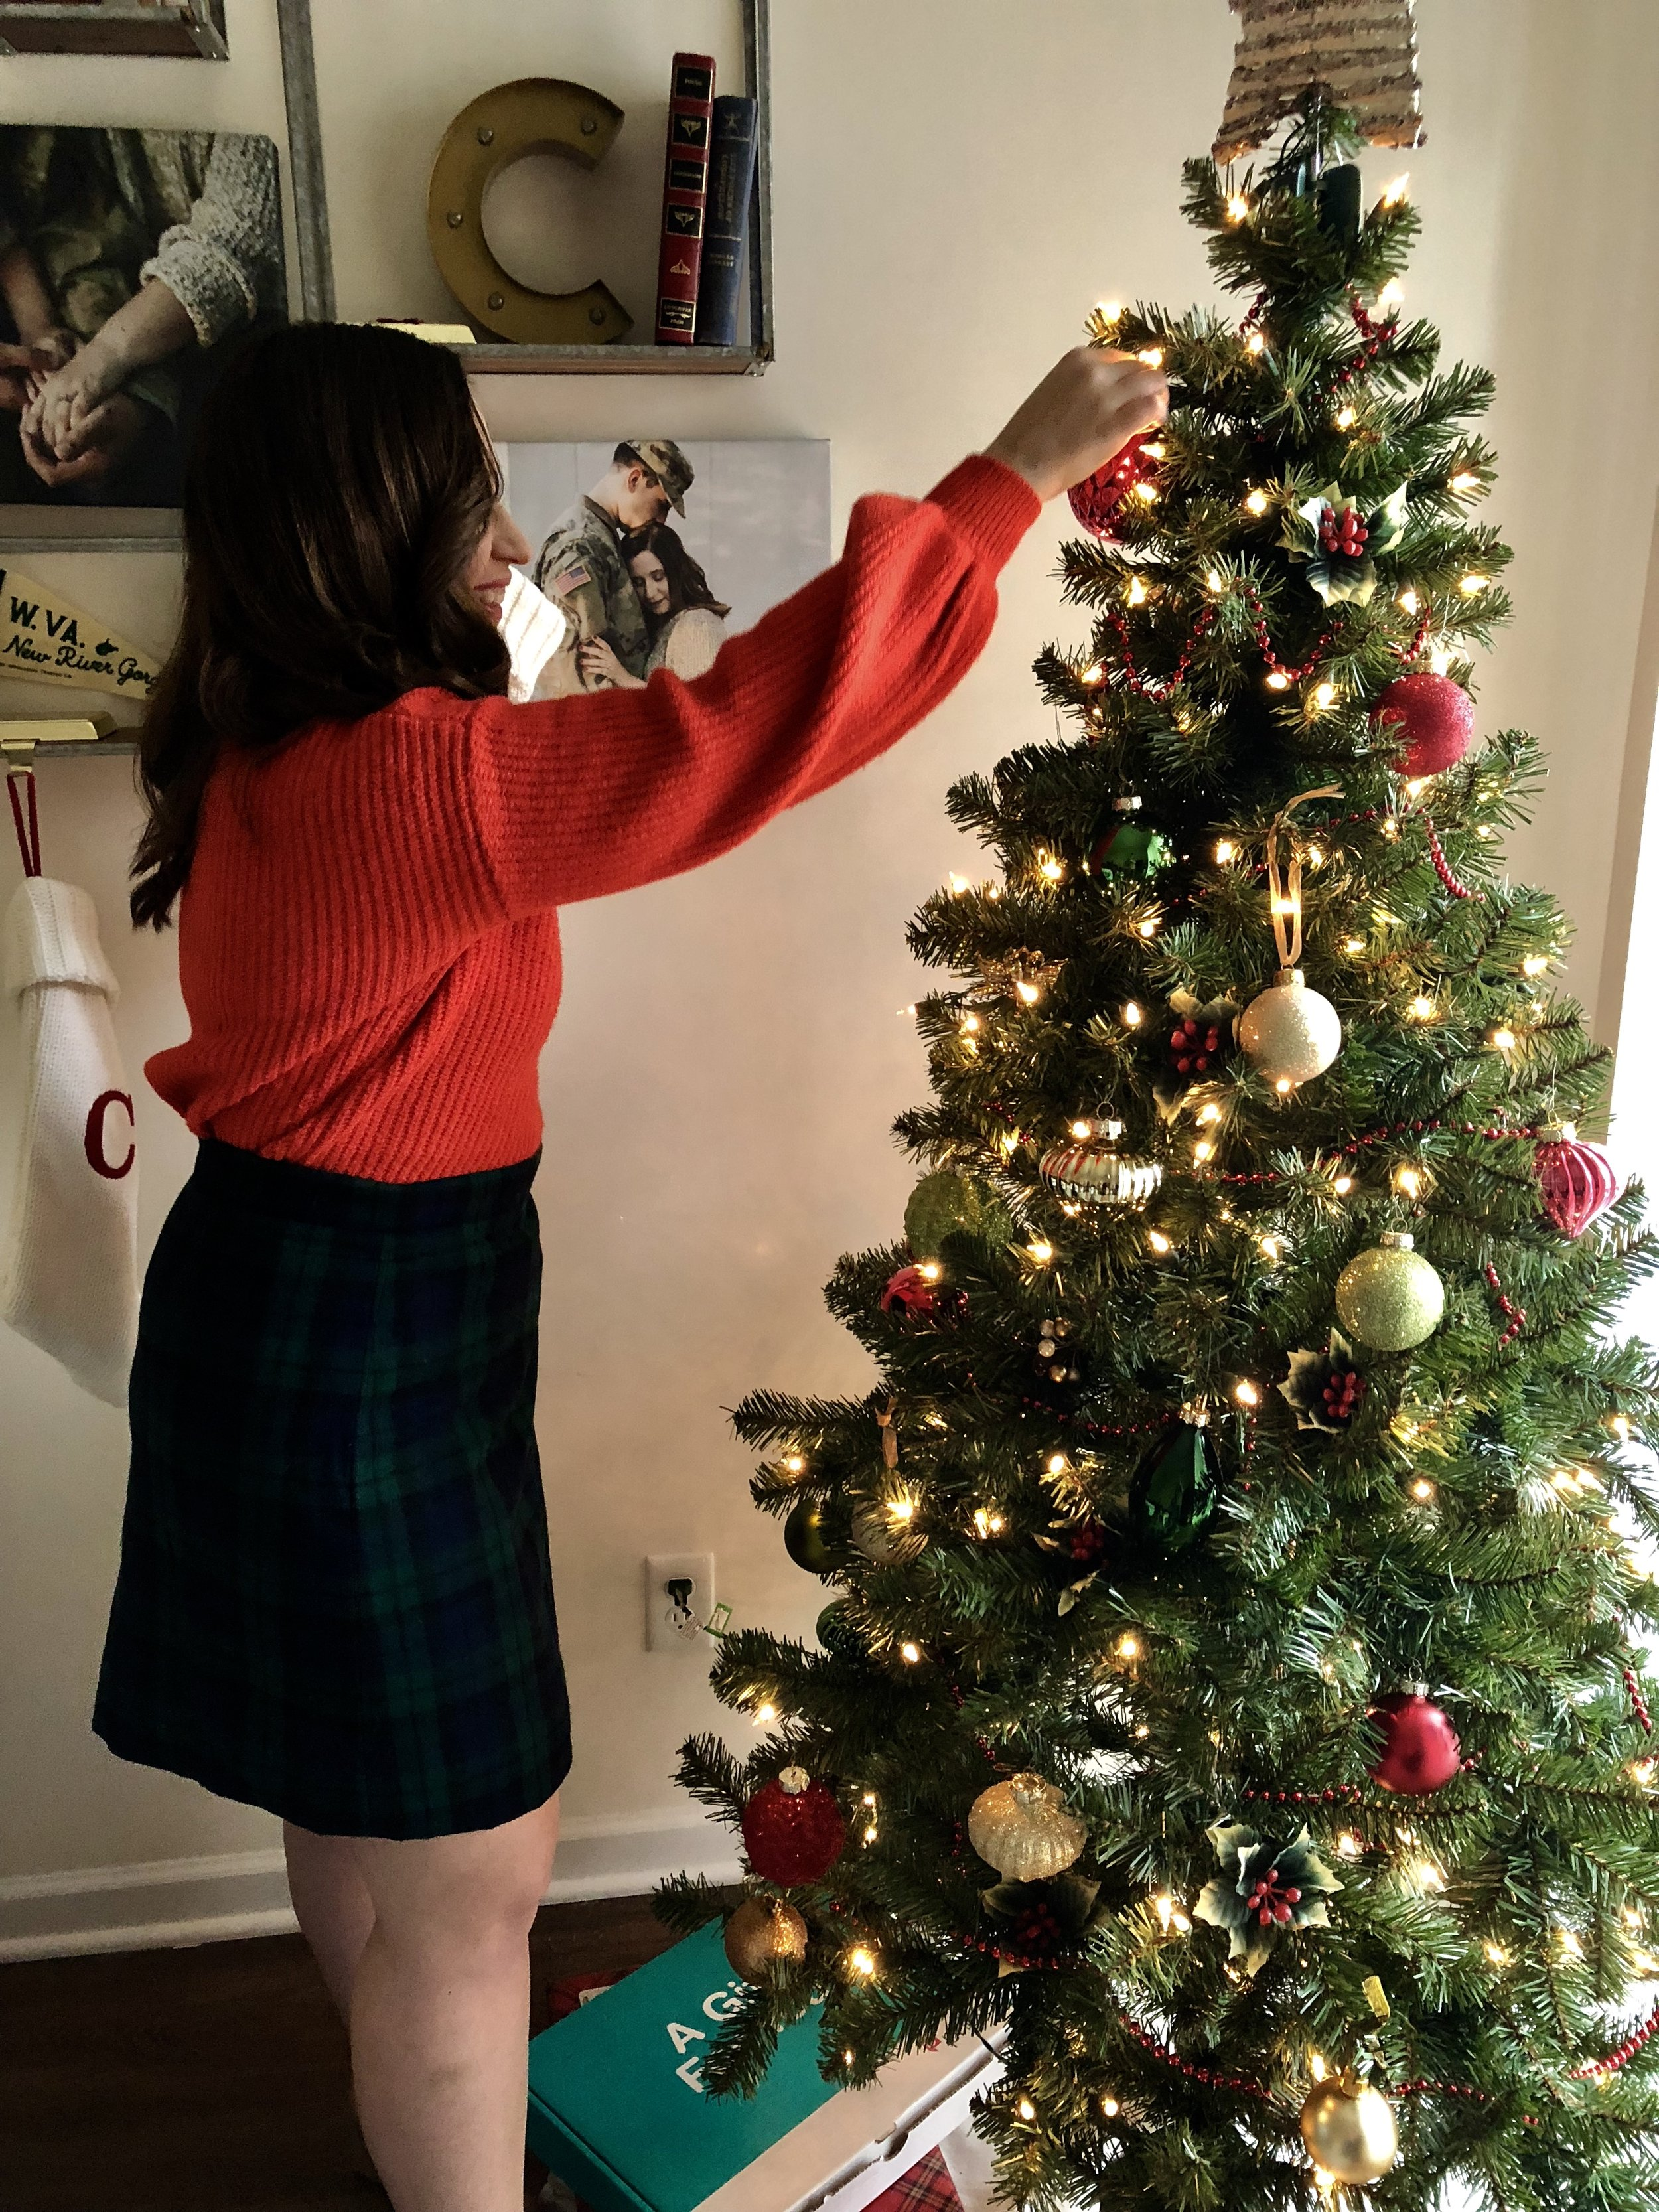 red sweater outfit ideas, plaid skirt outfit ideas, holiday outfit ideas, christmas outfit ideas, instagram outfit ideas, winter outfit ideas